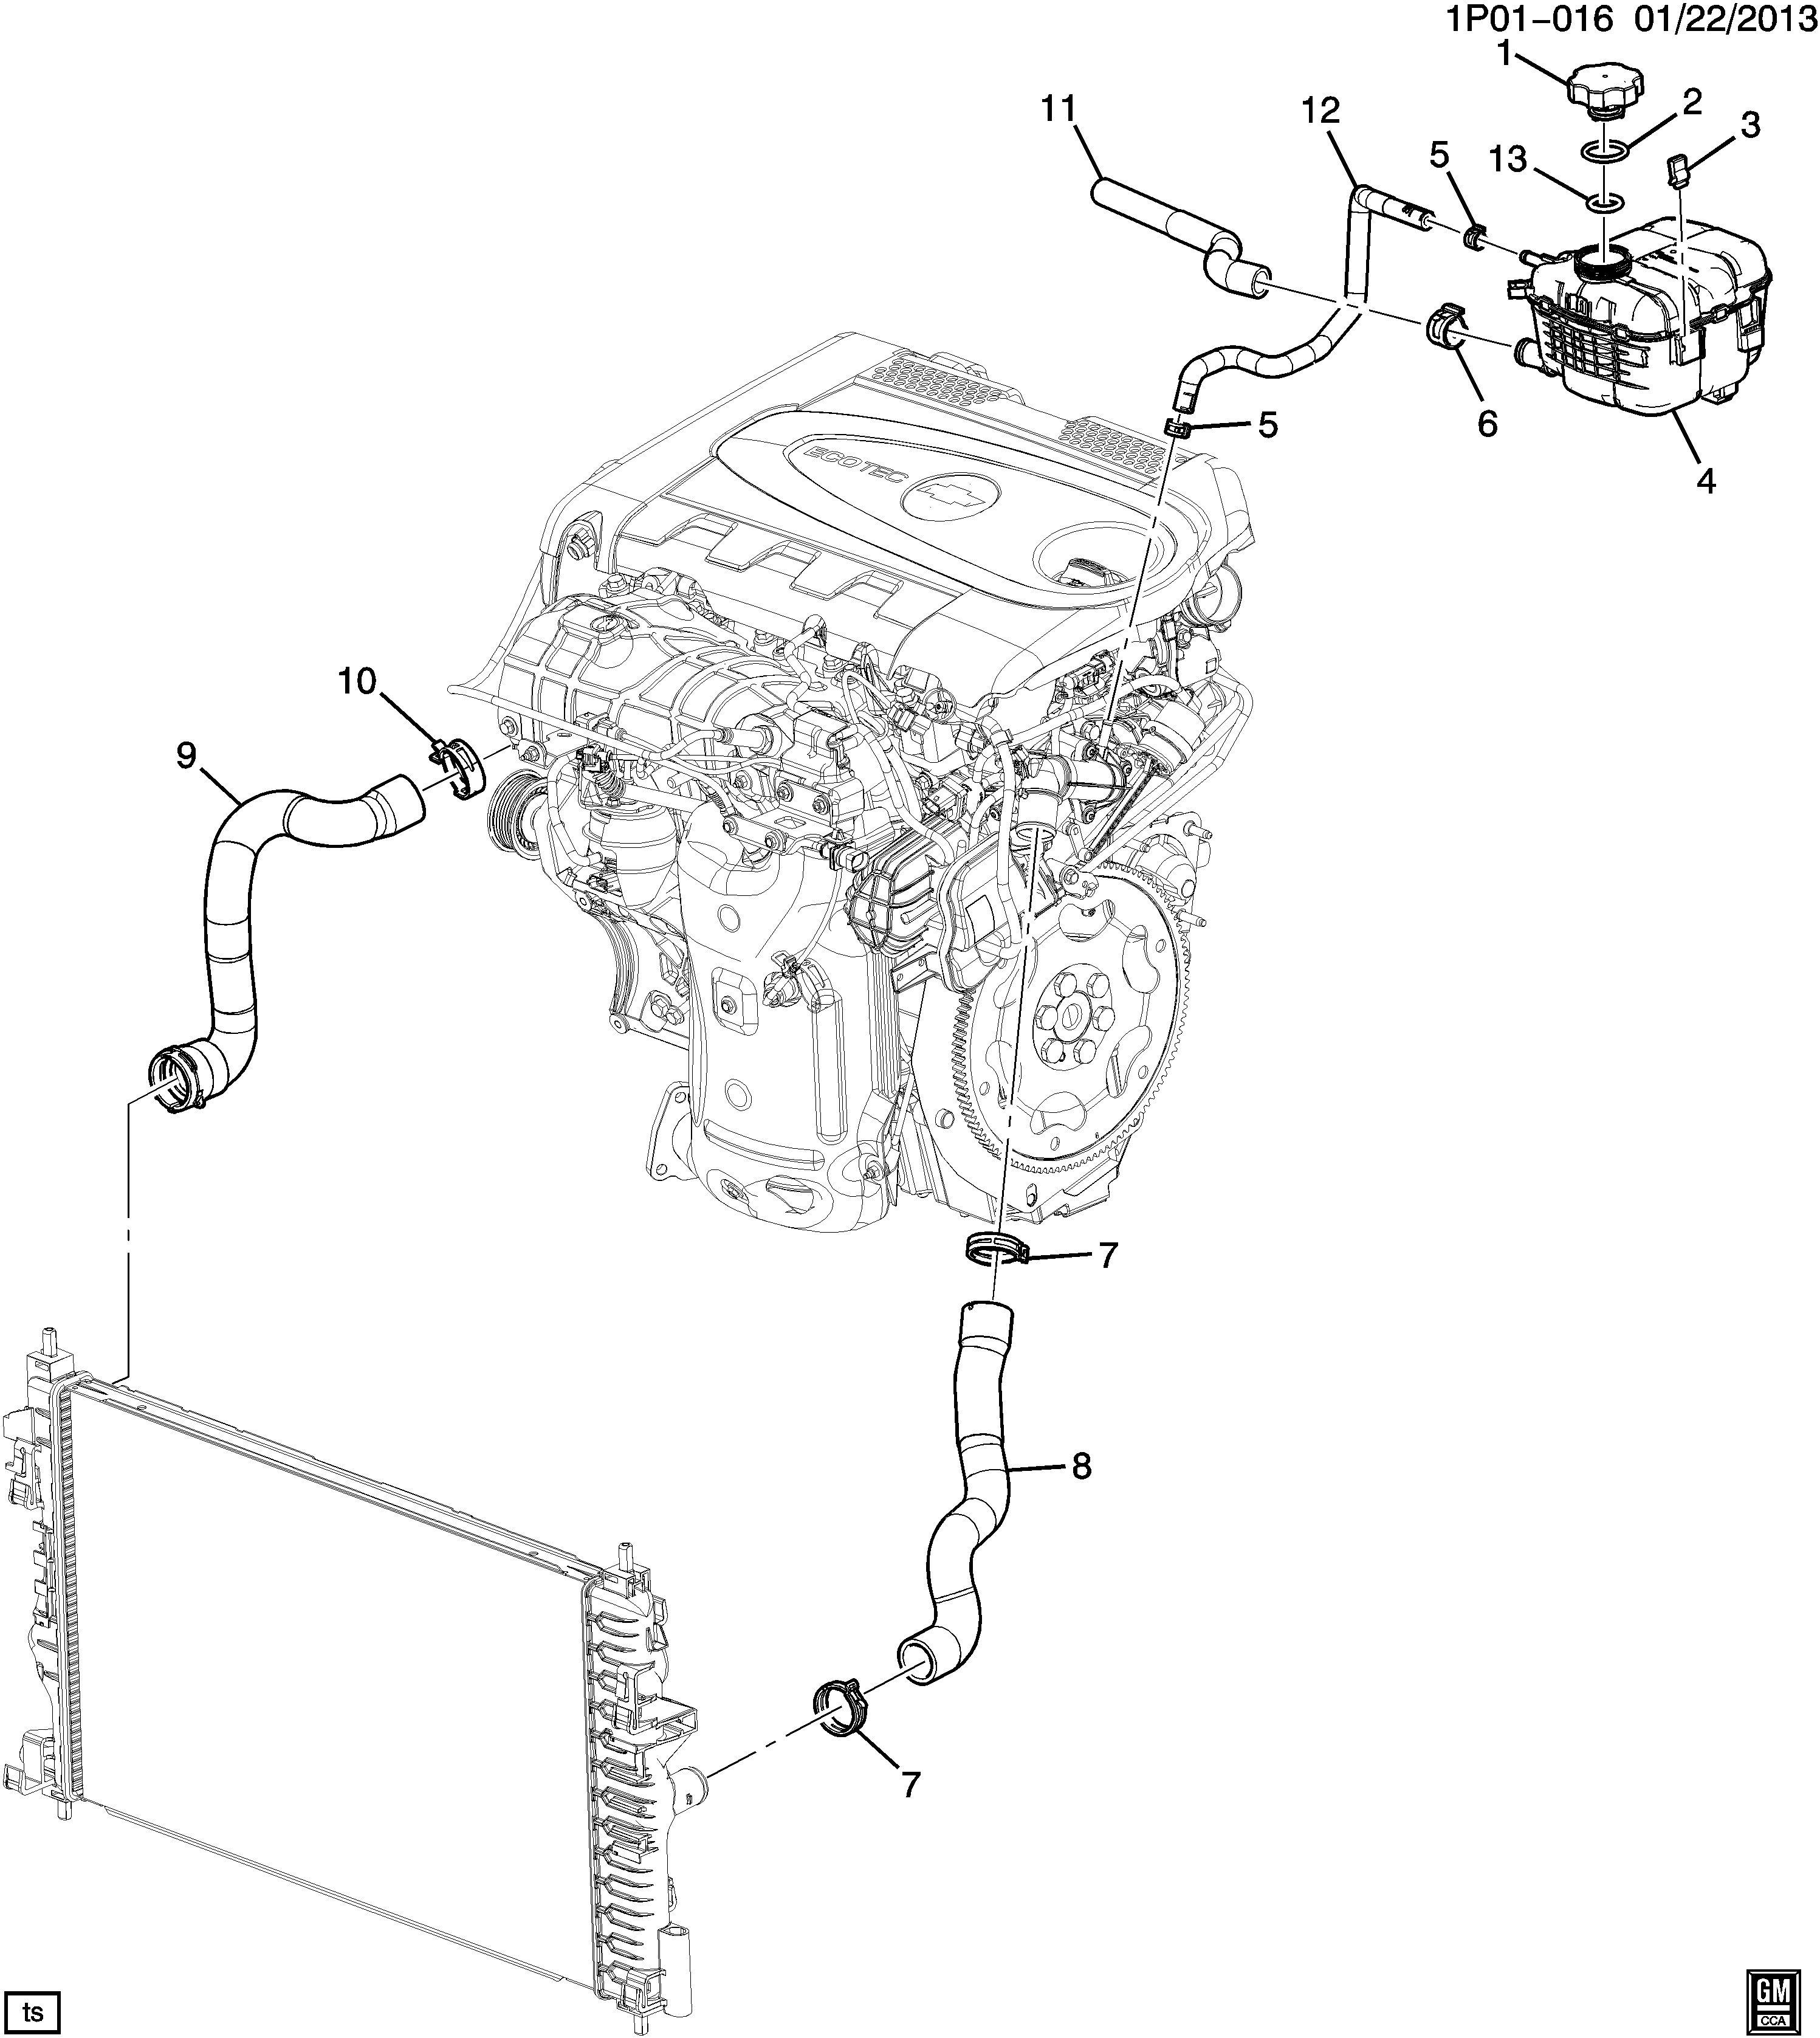 2014 Chevrolet Cruze Cap. Engine coolant recovery